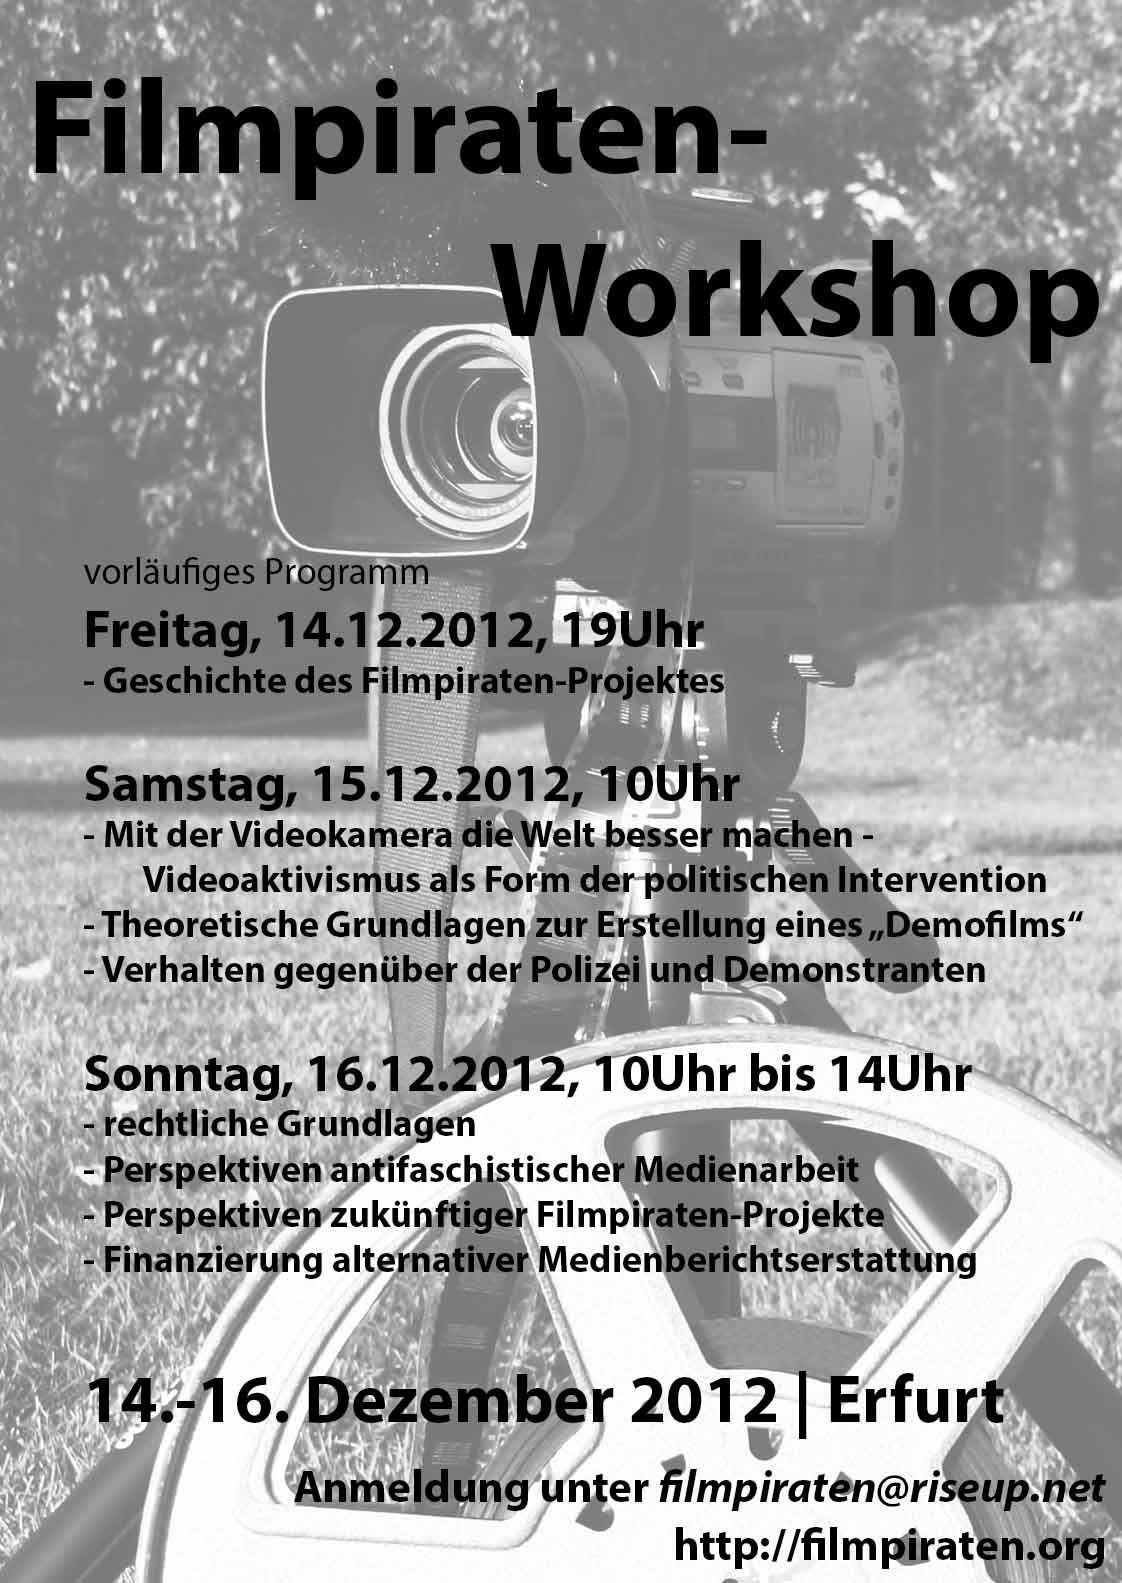 Filmpiraten-Workshop in Erfurt